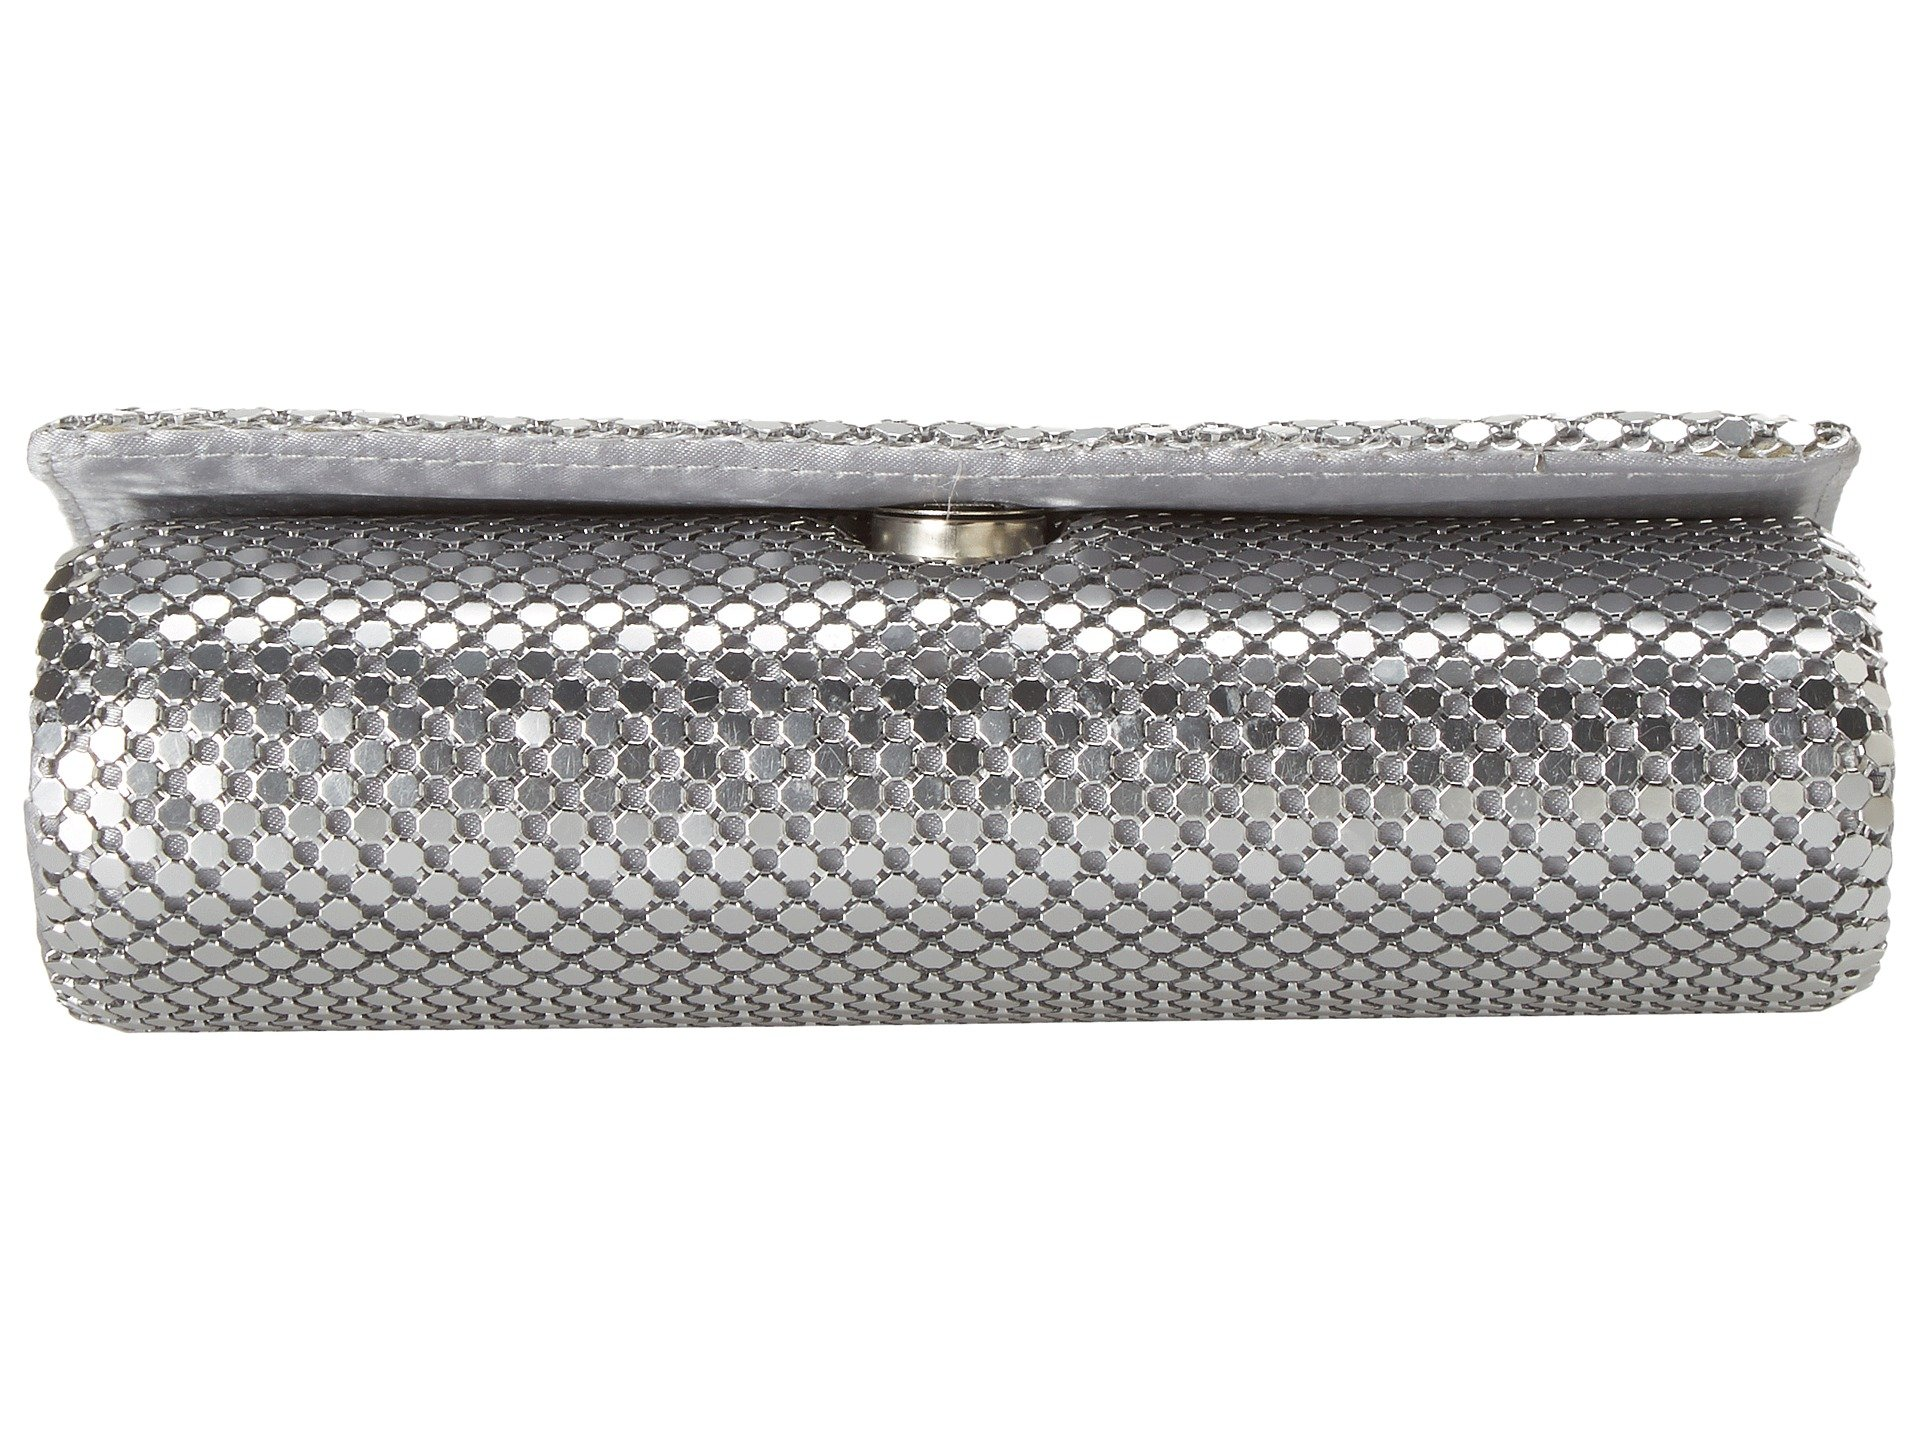 Mcclintock Roll Silver Jessica Bag East Metal west Mesh 1xXqnpd